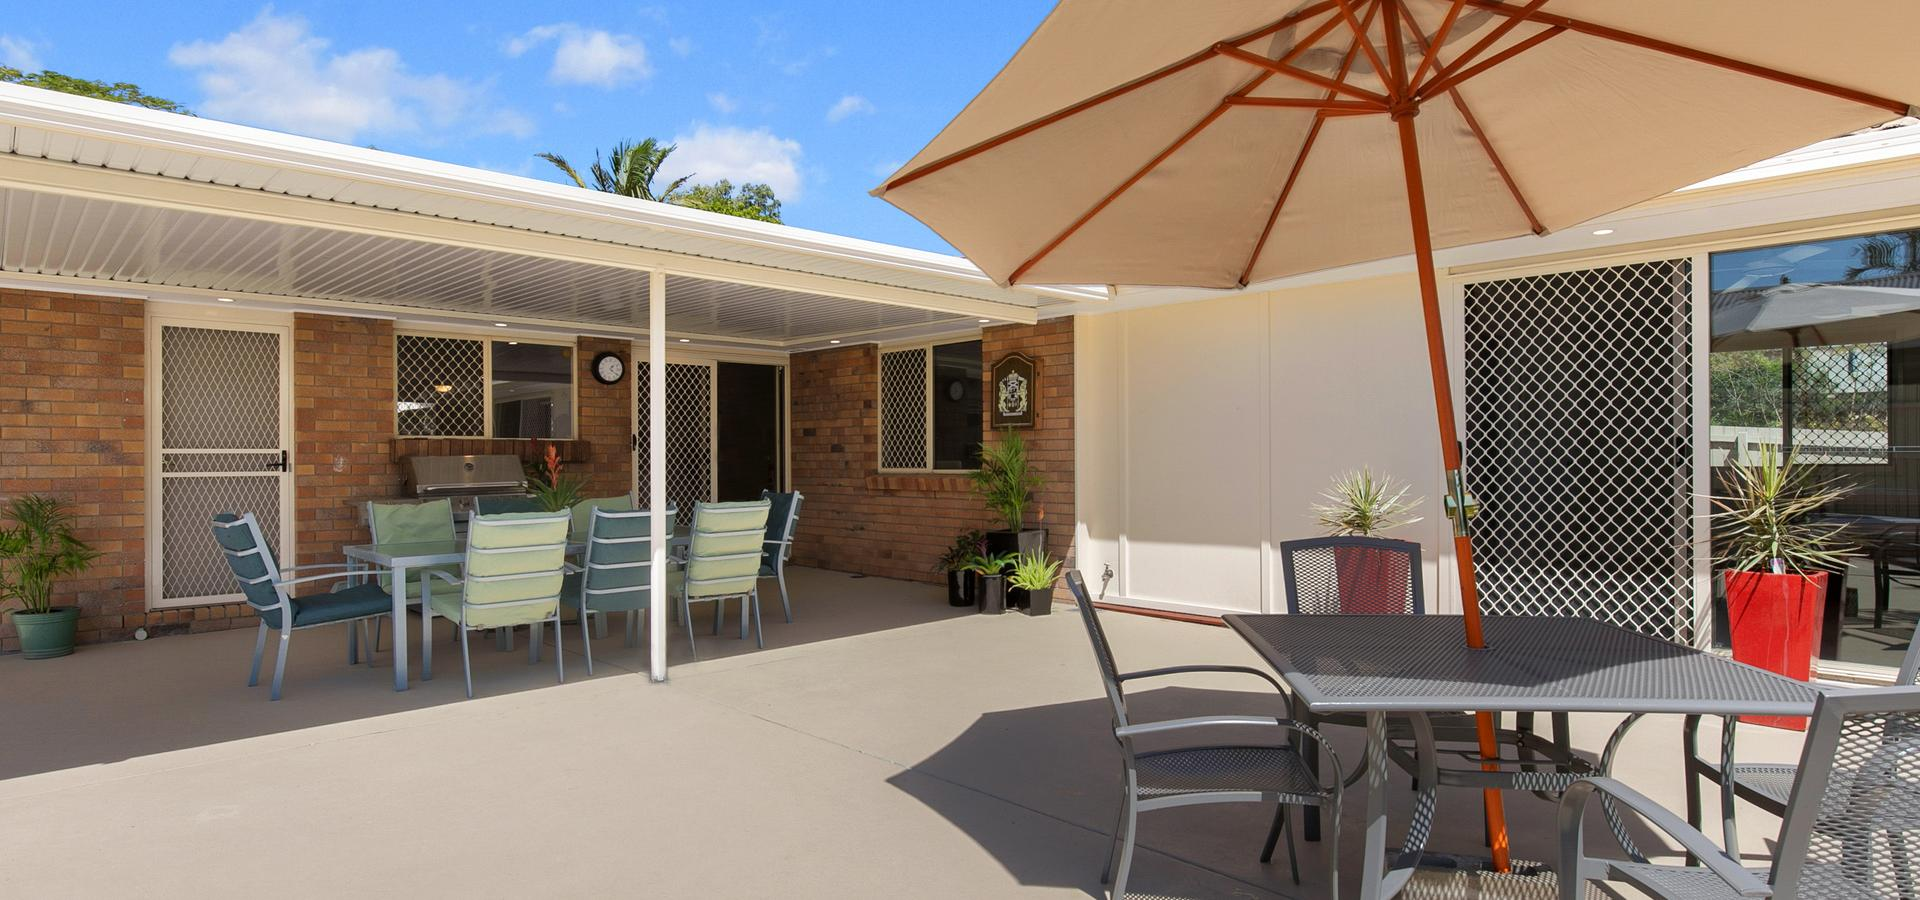 Spacious family home on 771m2 block - FULLY RENOVATED